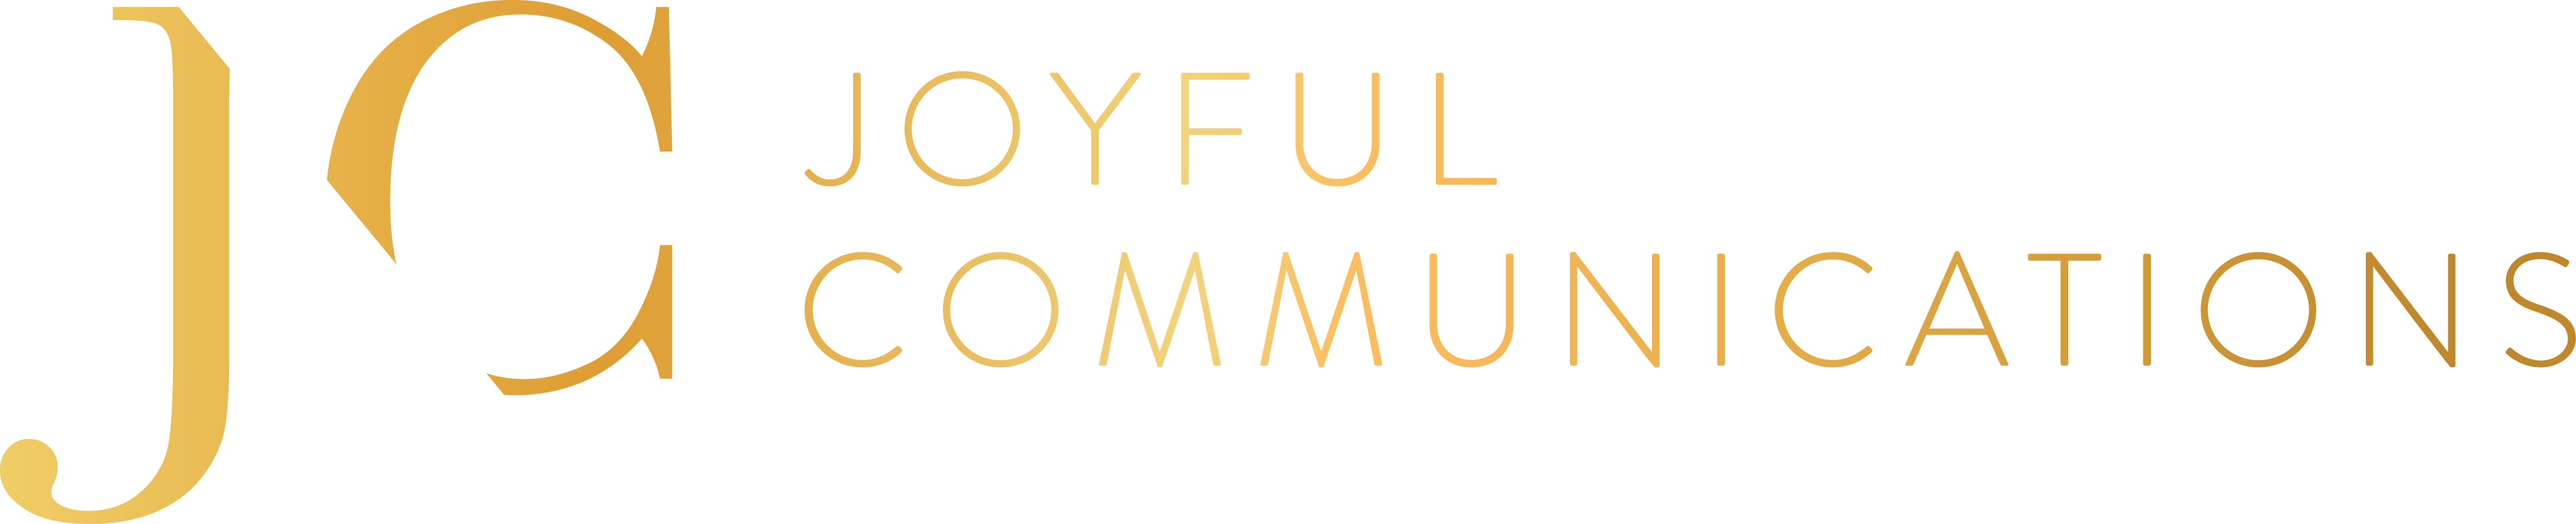 Joyful Communications, Public Relations, Copywriting and Editorial | Rockhampton, Queensland